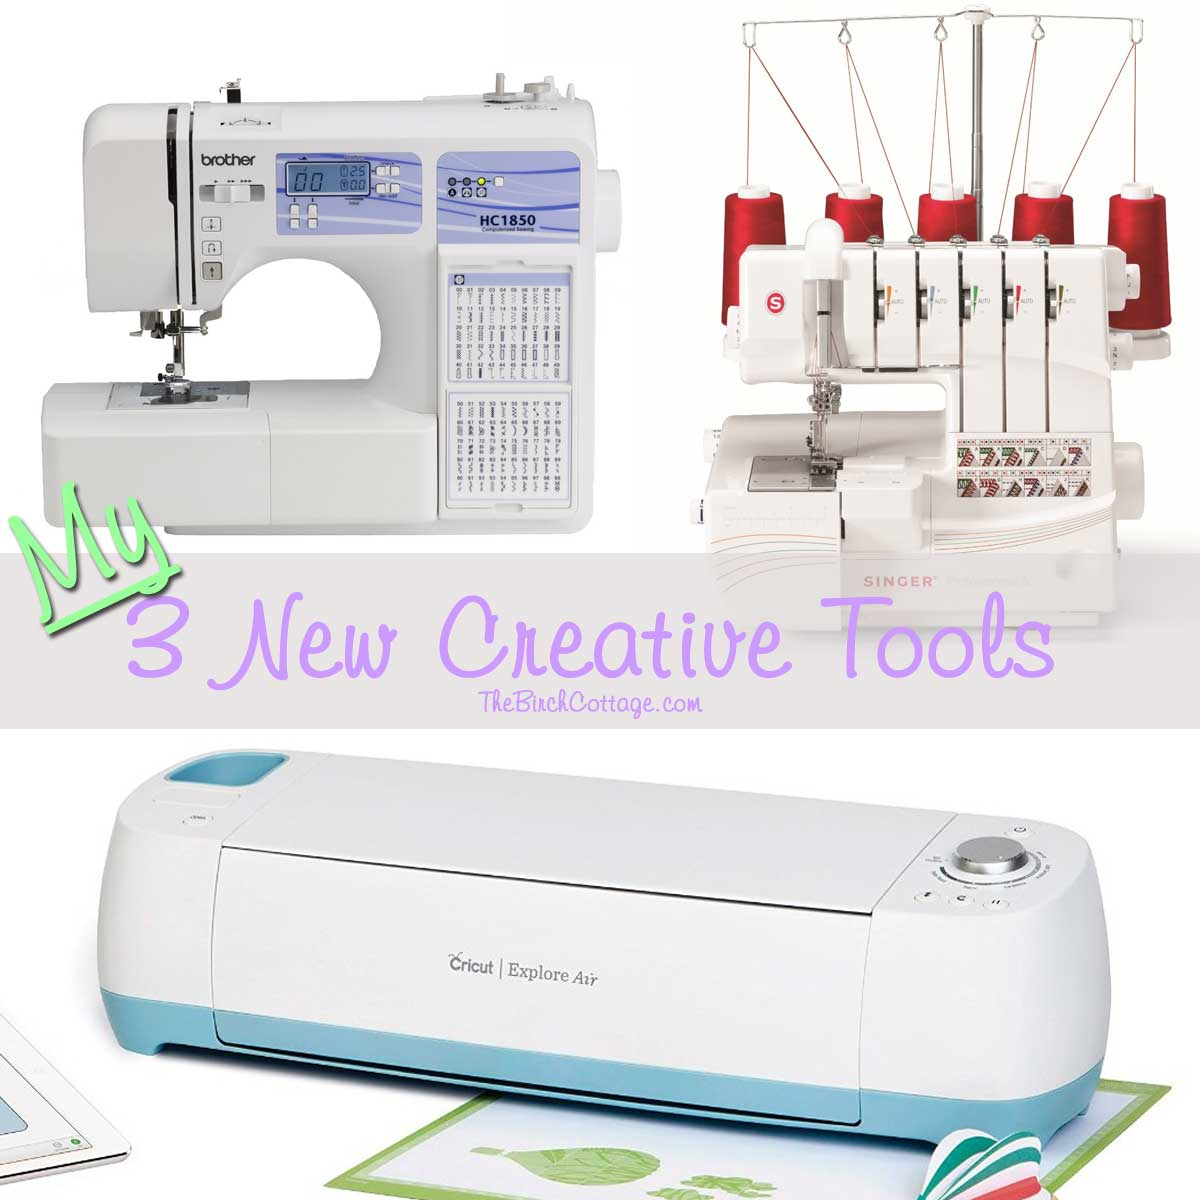 Three New Gifts: Brother Sewing Machine, Singer Serger, and Cricut Explore Air